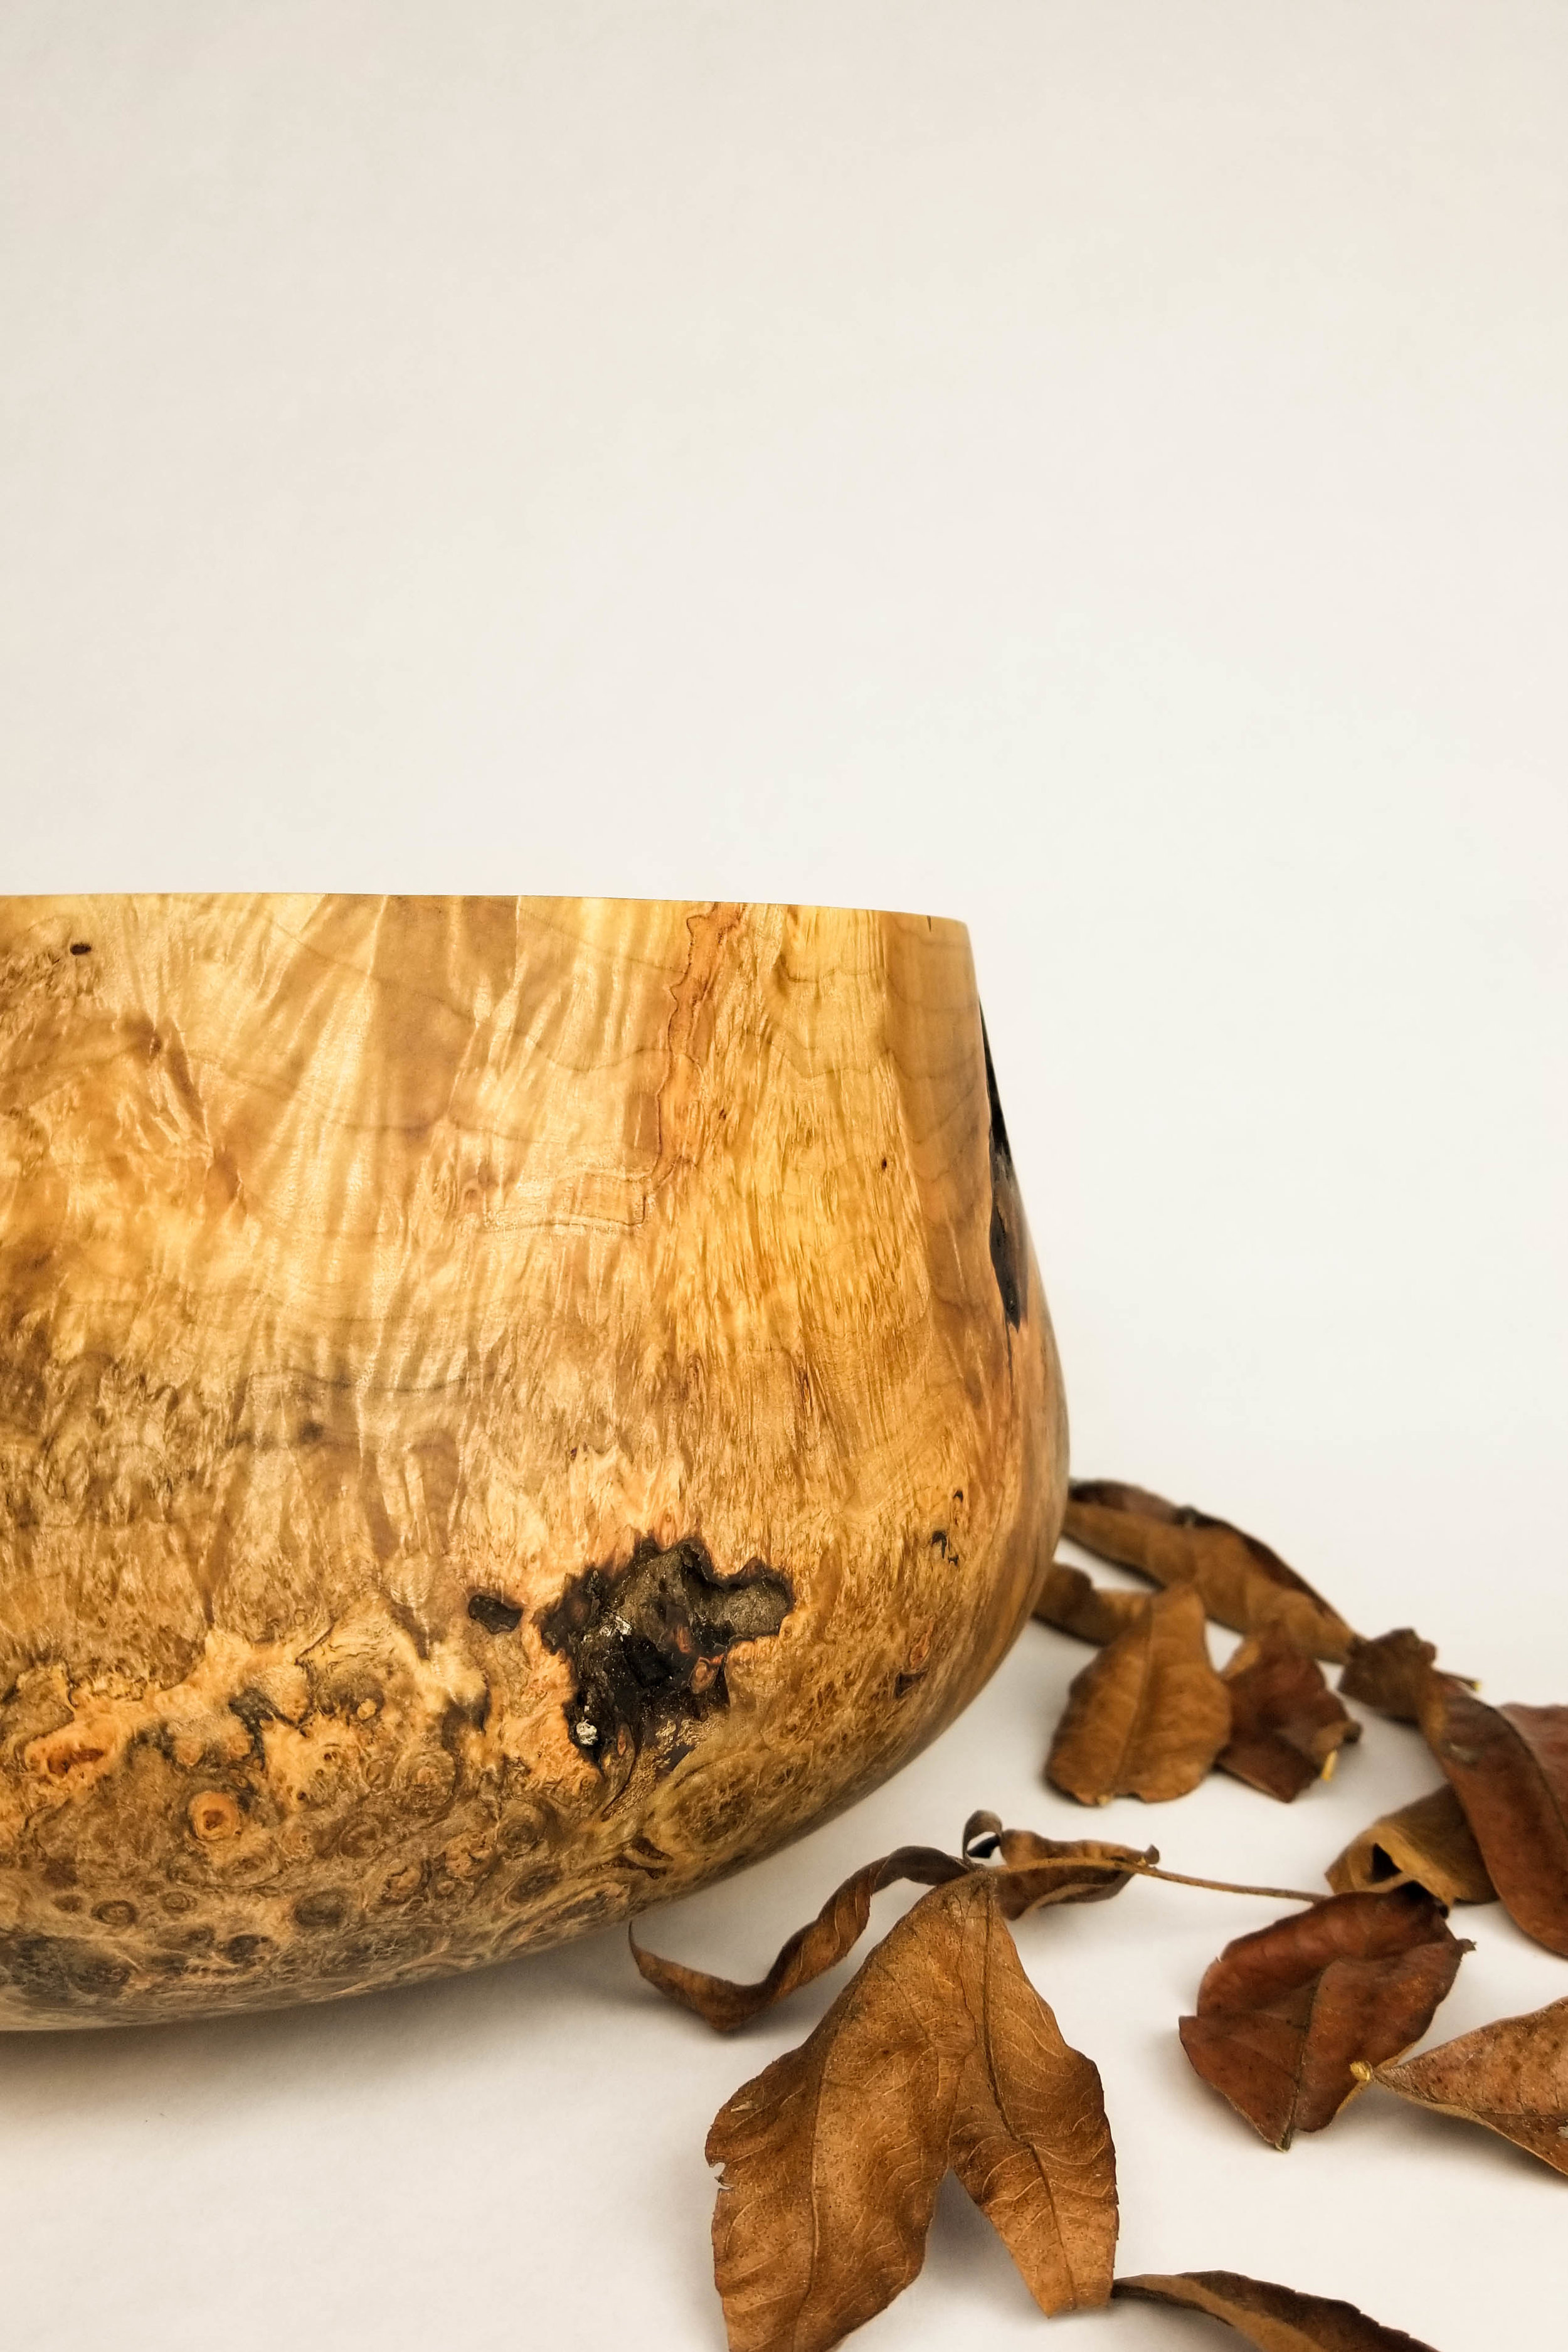 maple burl $495 1 vessel in stock, as pictured inquire for details